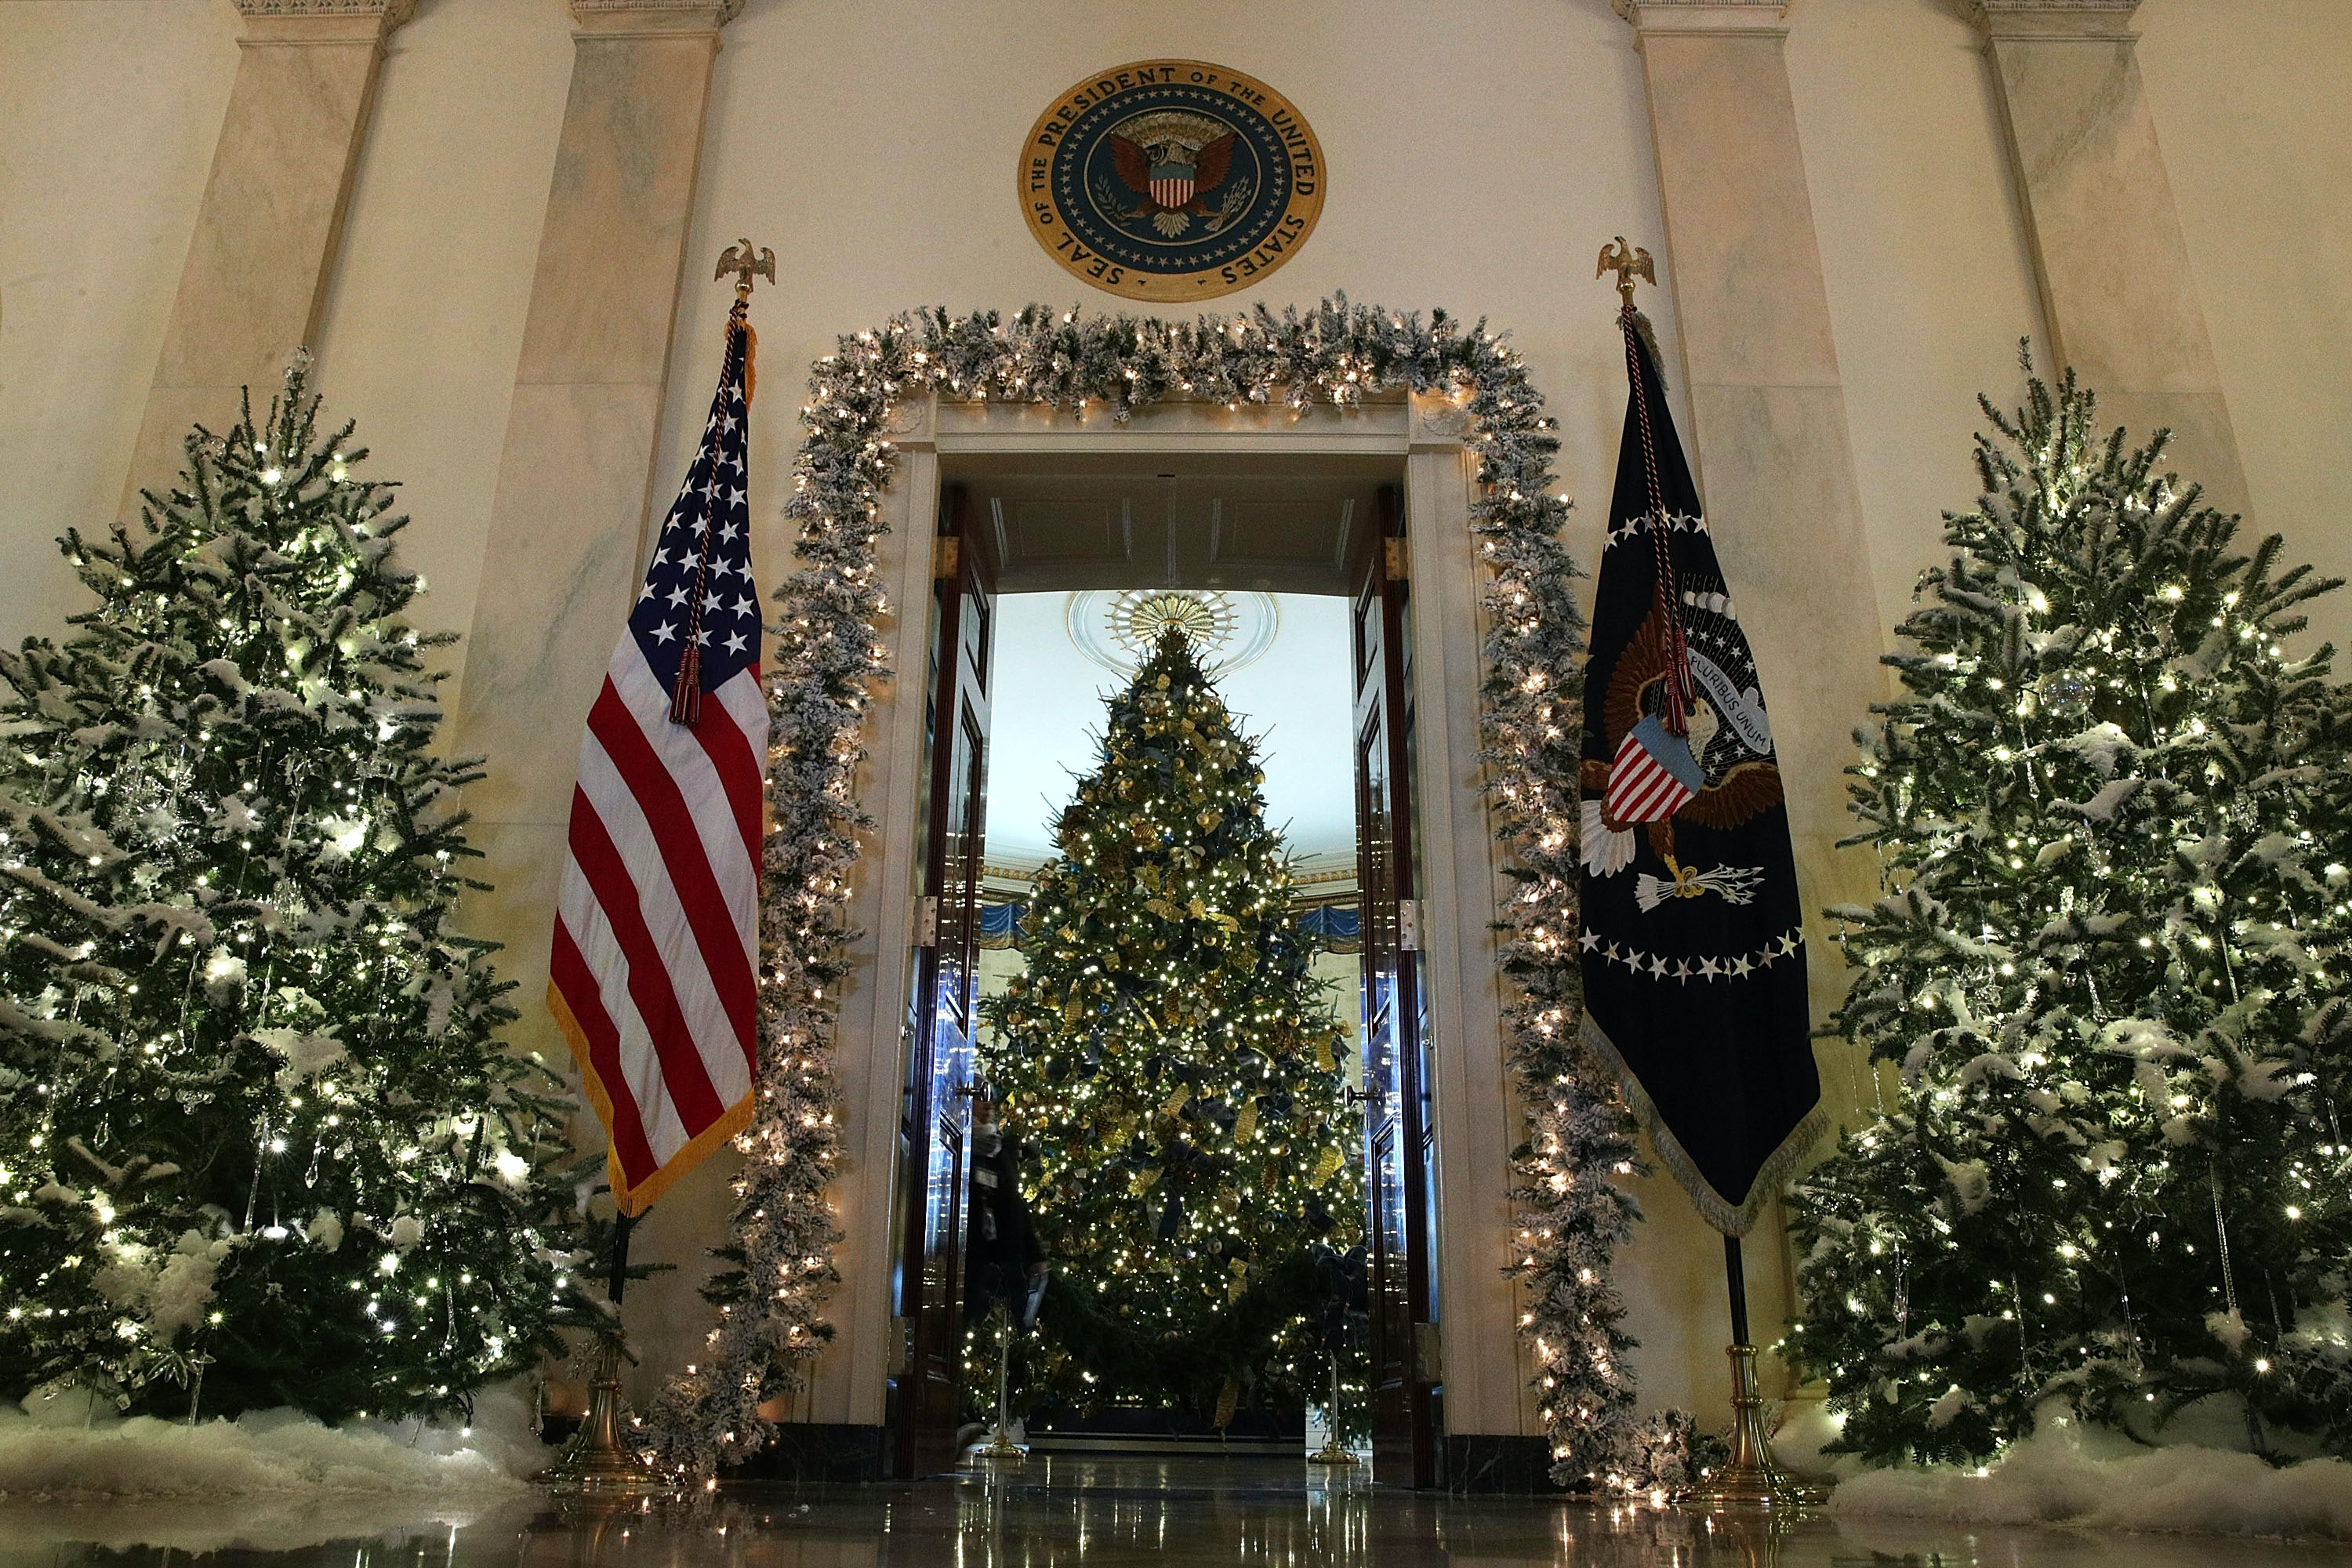 photos of trumps vs obamas white house christmas decorations are making us so nostalgic - Melania Christmas Decor